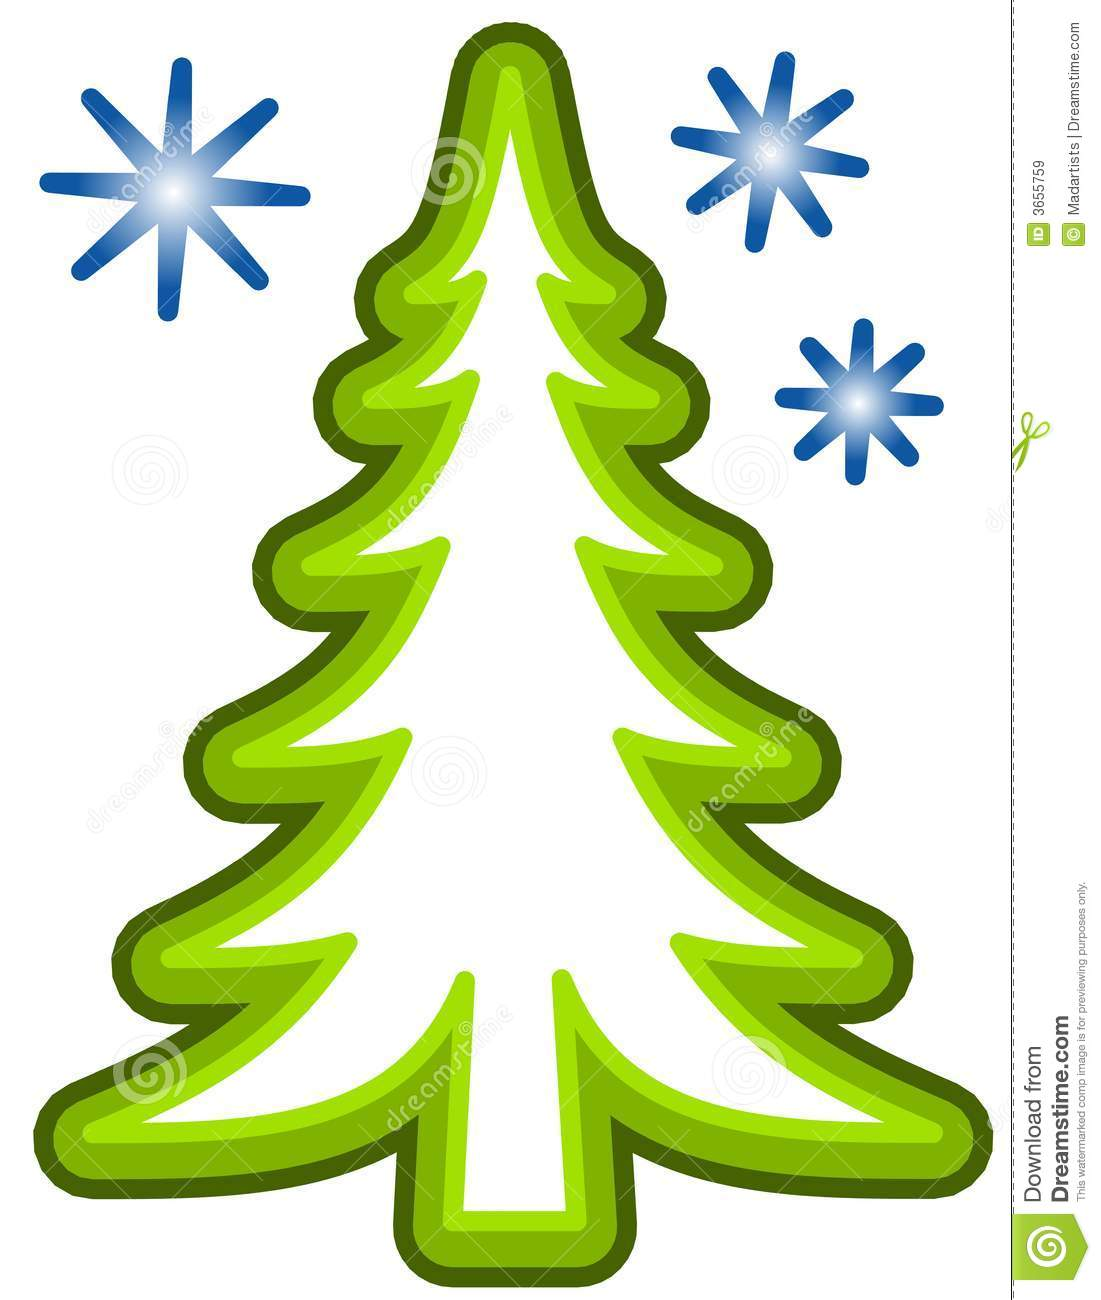 simple christmas tree clip art stock illustration illustration of rh dreamstime com charlie brown christmas tree free clipart christmas tree border clipart free